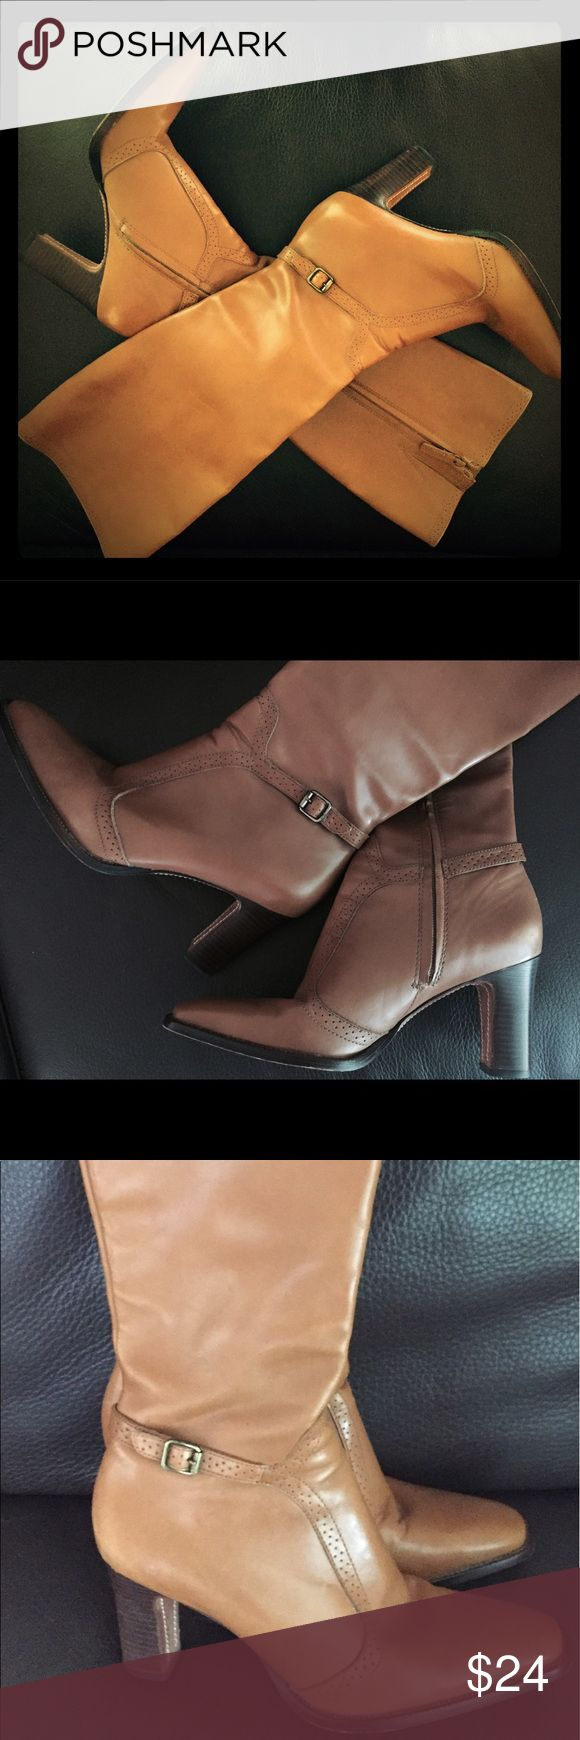 Antonio Melani leather boots 7.5 camel brown high Used but in good condition. All Leather made in Brazil. Beautiful camel color. Glove fit. Cute buckles and wooden heel. ANTONIO MELANI Shoes Heeled Boots